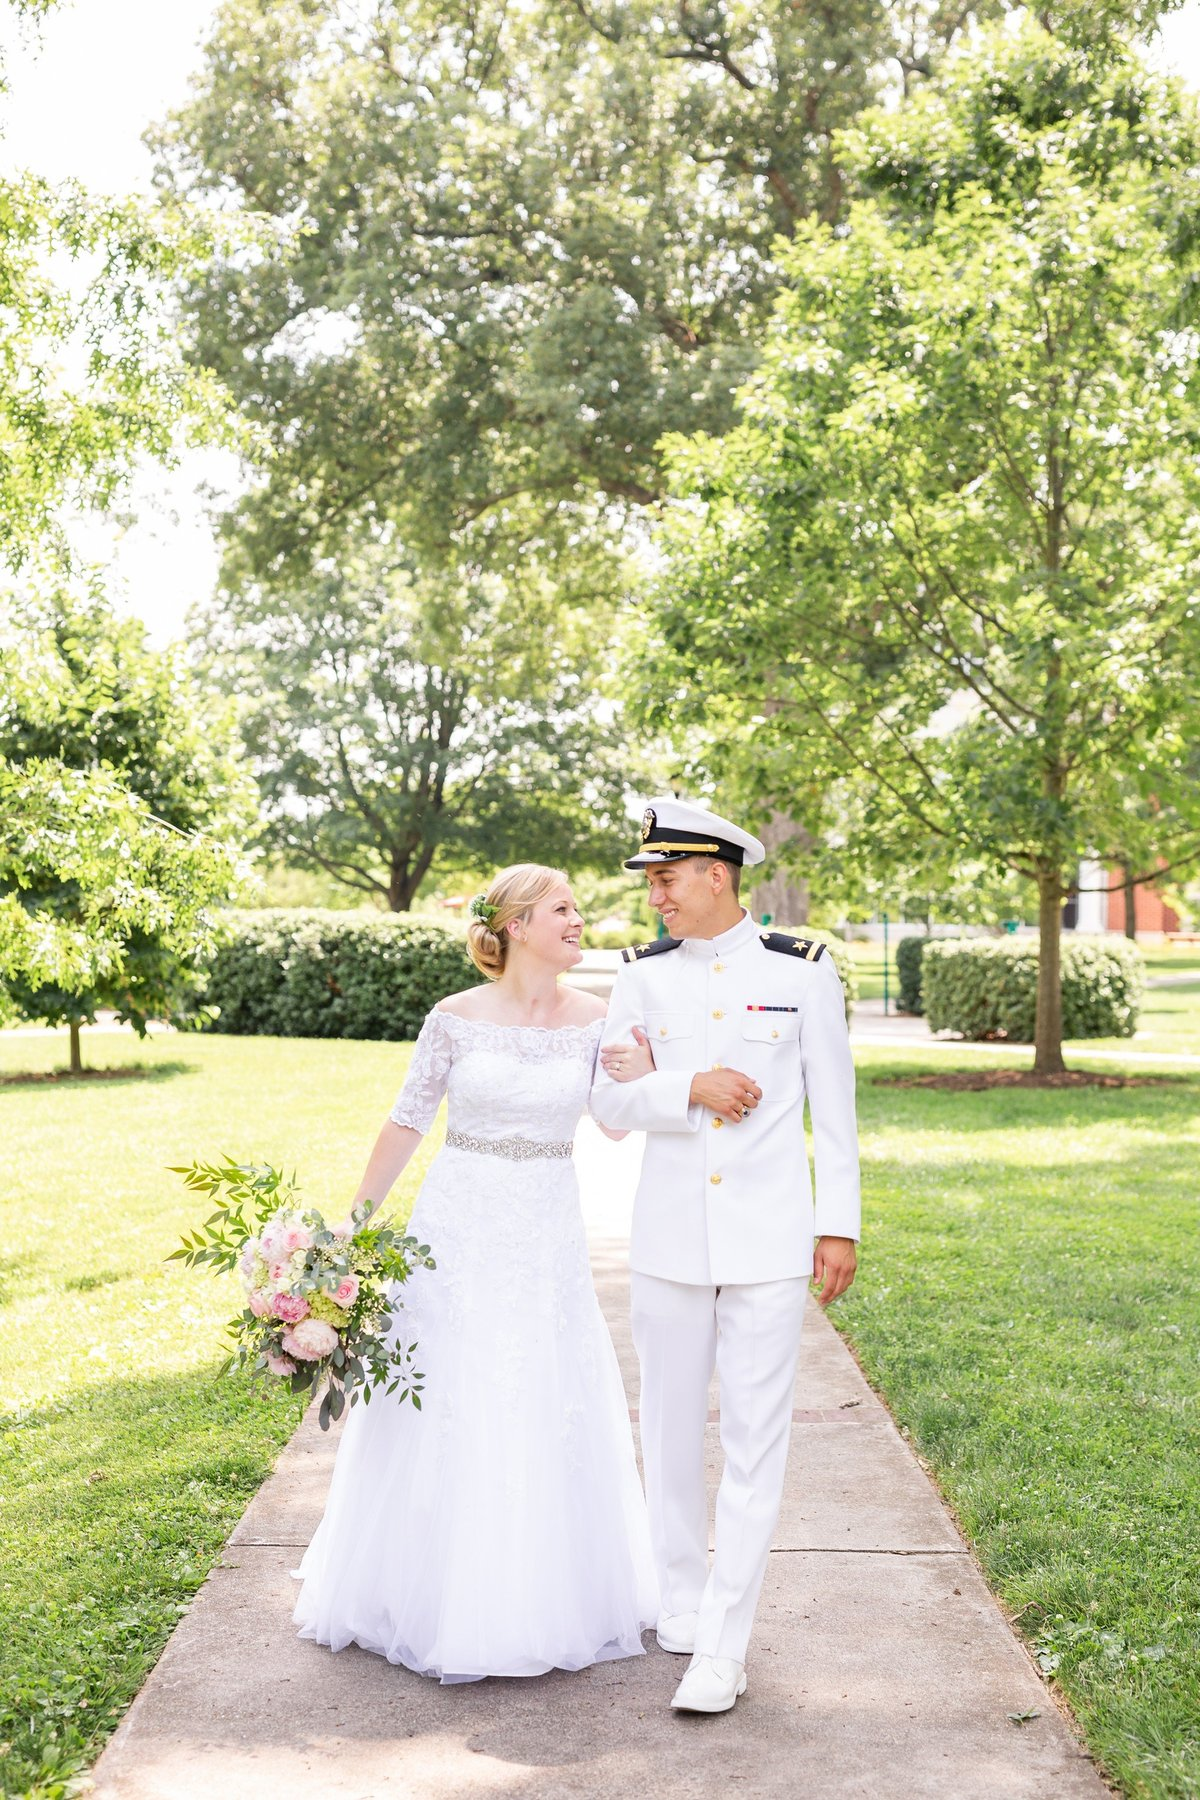 Jennifer Laura Photography wedding couple walking together in Lynchburg Virginia at Lynchburg College